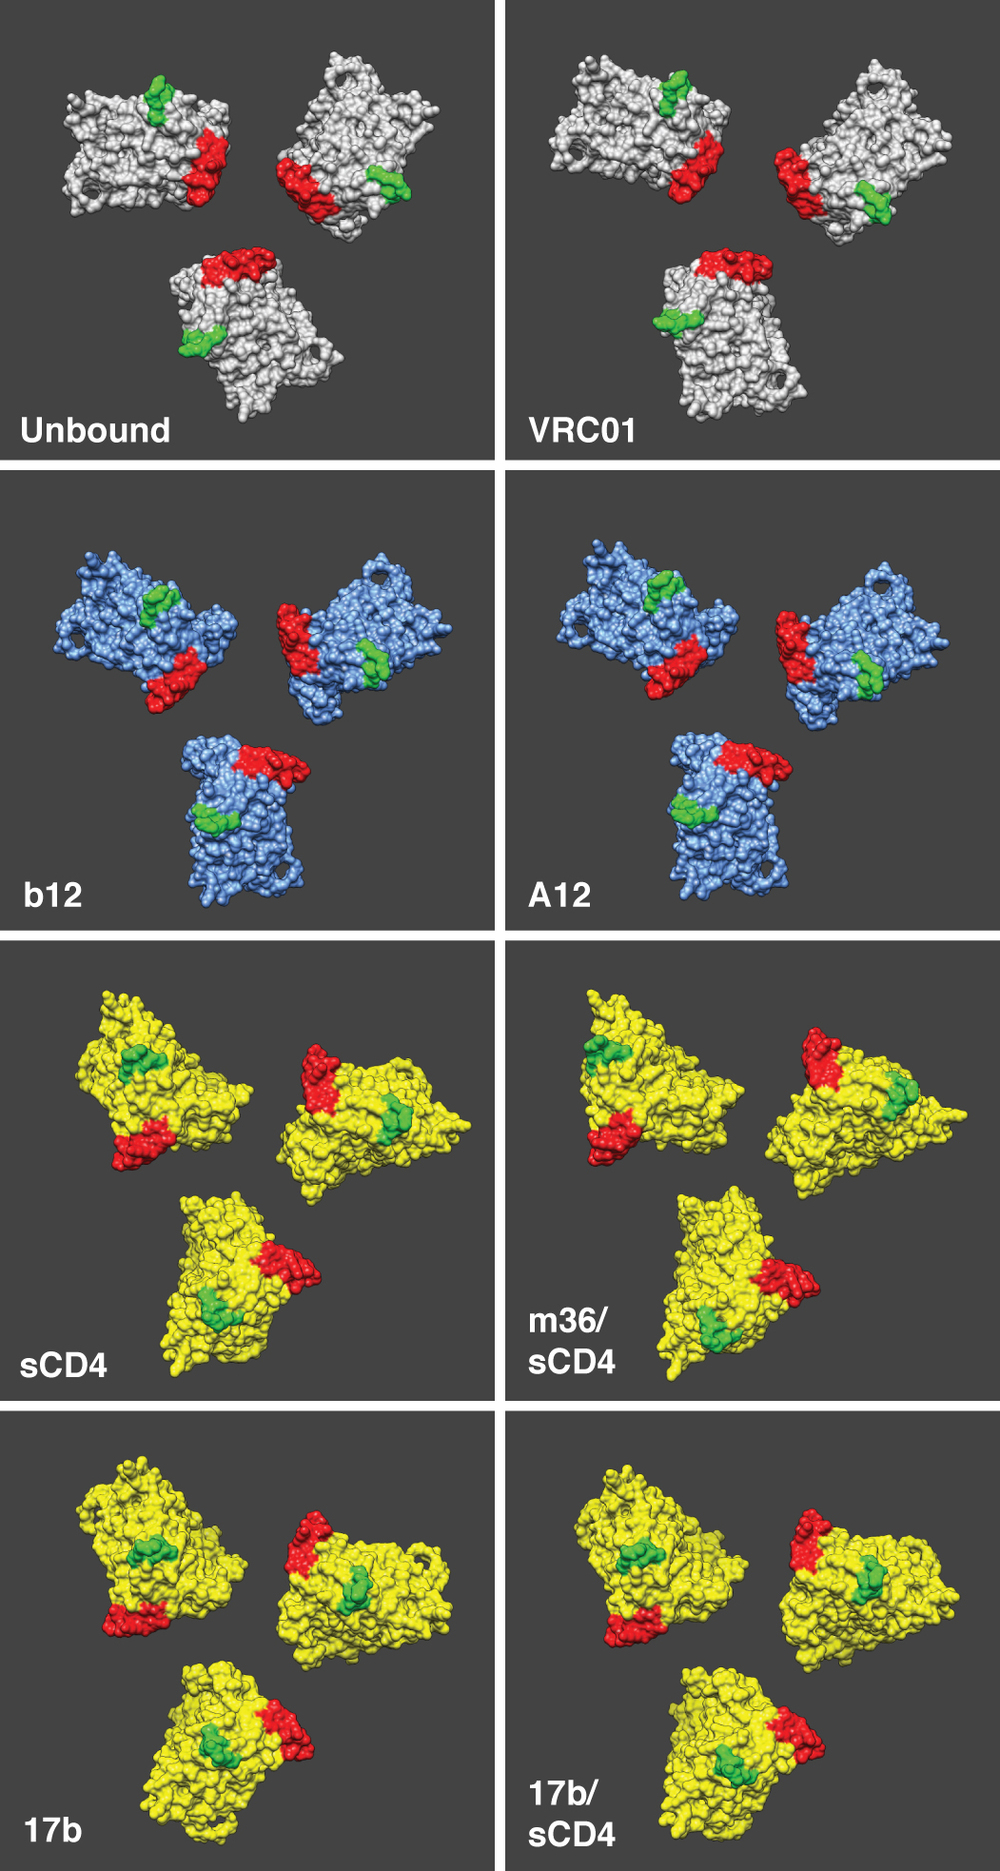 HIV-1 gp120 trimer models In order for HIV-1 to infect a CD4+ T-cell, the Envelope protein undergoes dramatic rearrangements to accommodate binding with two partner proteins on the cell surface. These events culminate in fusion of the virus membrane with the cell, and infection. This collection of HIV-1 Envelope models show stages of this process, and were derived by fitting protein domains from crystallography into density maps derived from cryo-EM. Adapted from Meyerson et. al. 2013 Proc Natl Acad Sci USA.